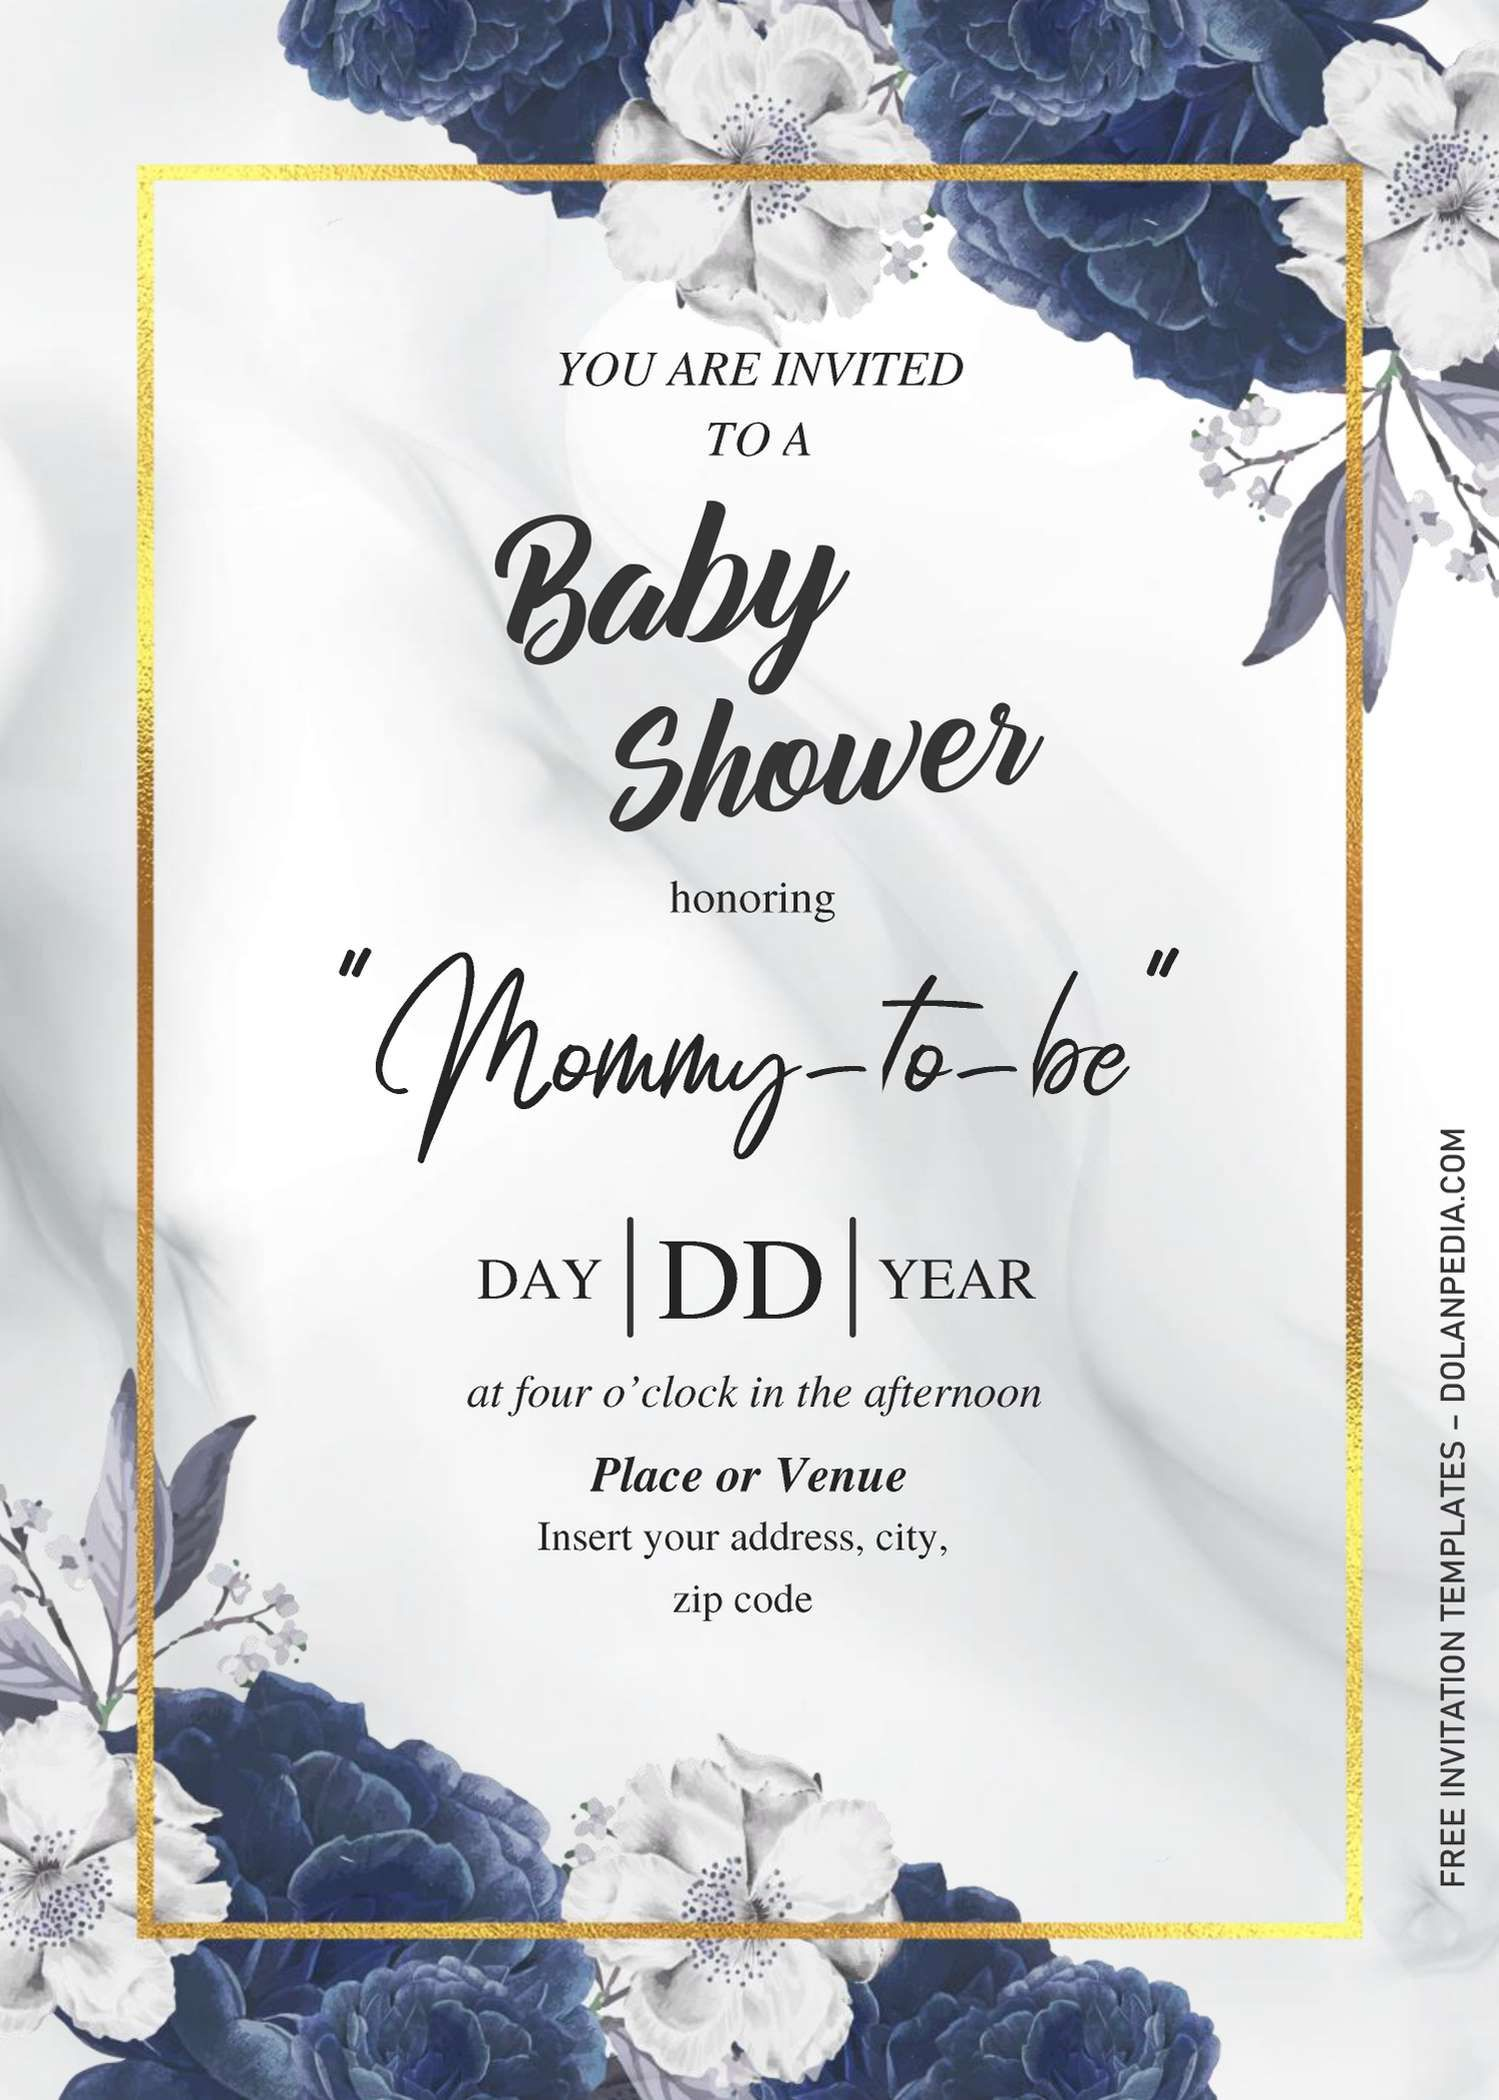 Dusty Blue Rose Baby Shower Invitation Templates Editabl Blue Baby Shower Invitations Baby Shower Invitation Templates Free Printable Baby Shower Invitations - ms word invitation templates free download